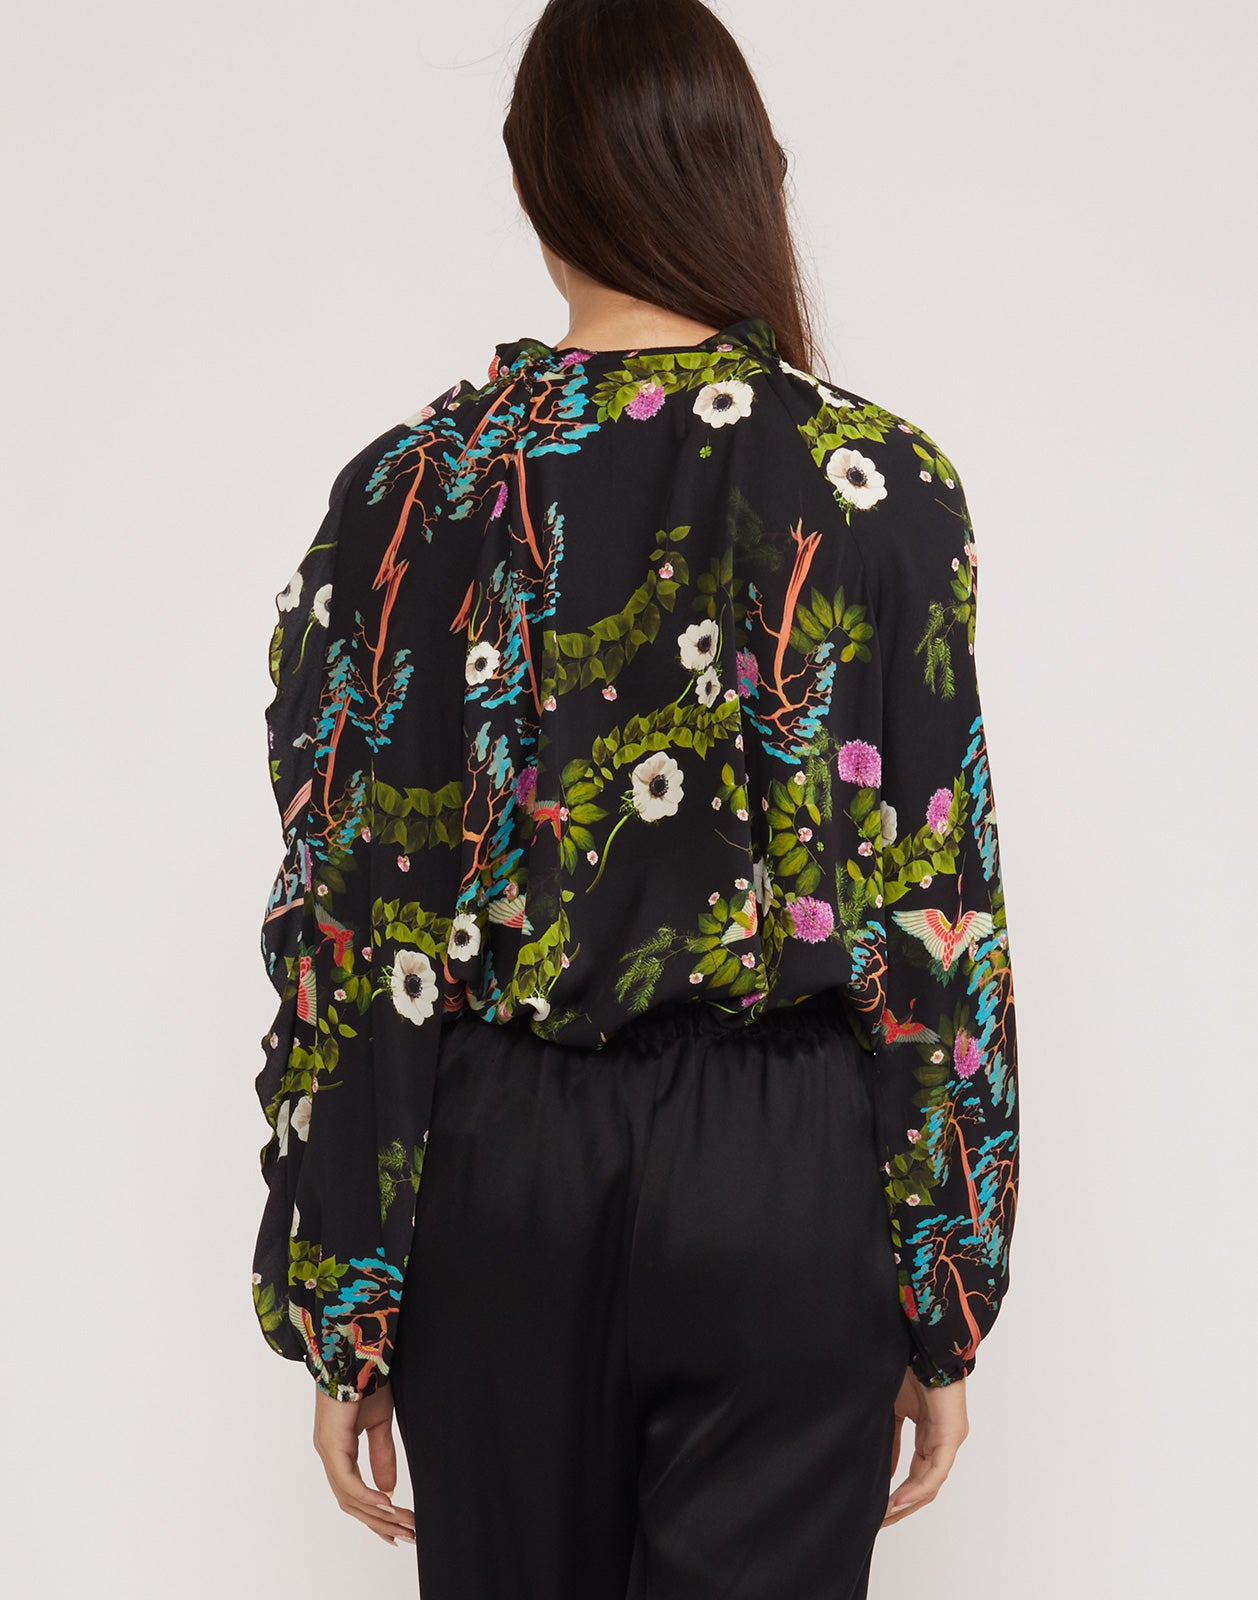 Back view of Windsor blouse in dark floral print.